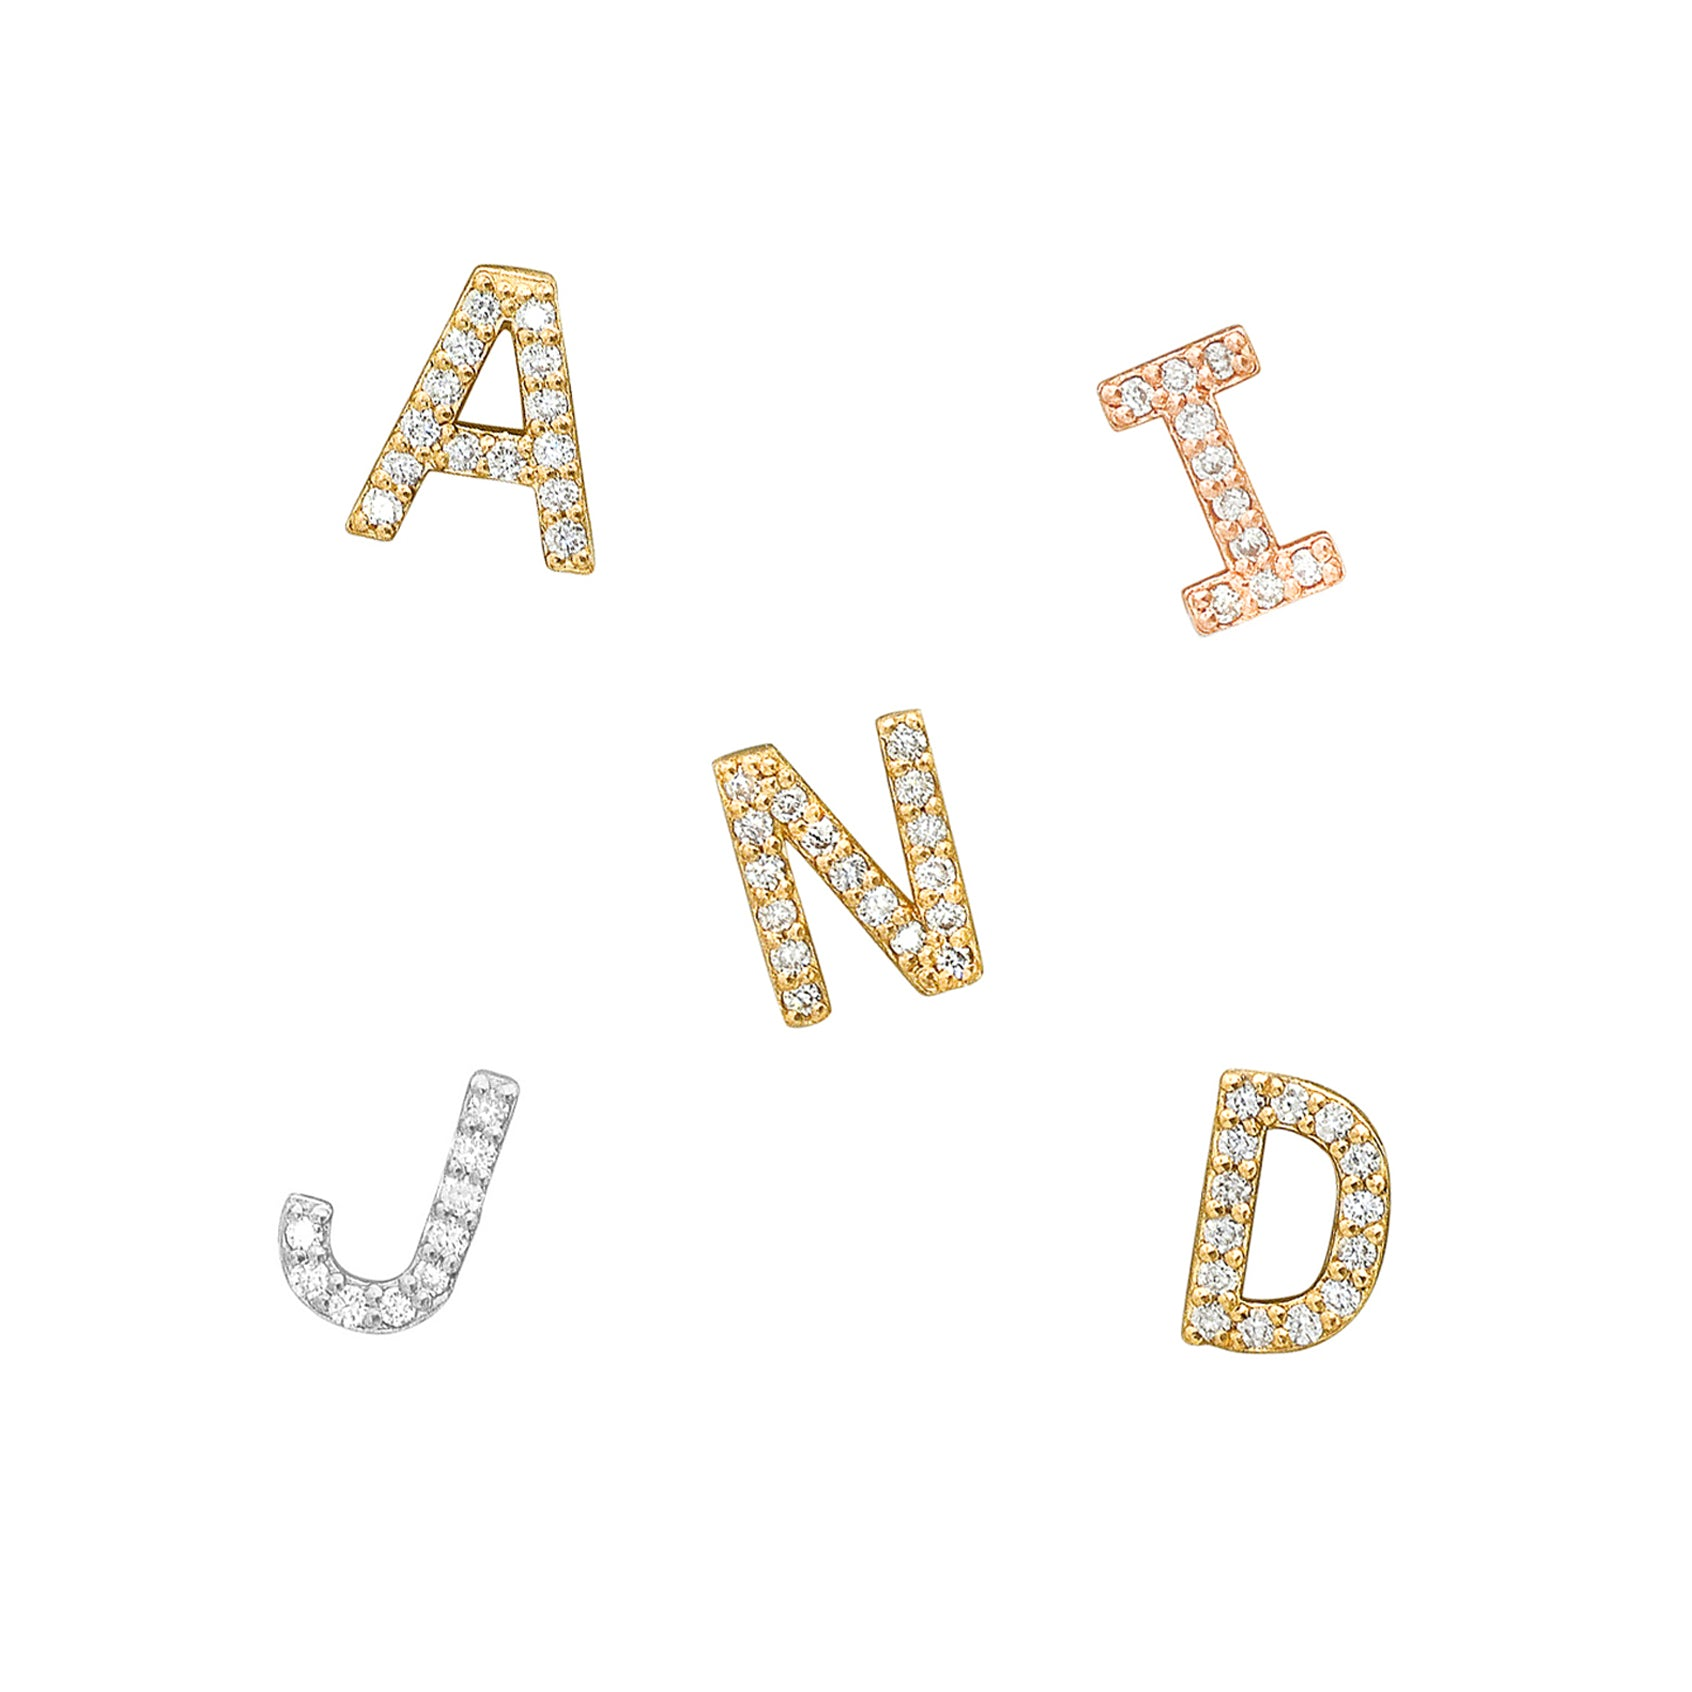 Add a Diamond Letter to your Custom Necklace